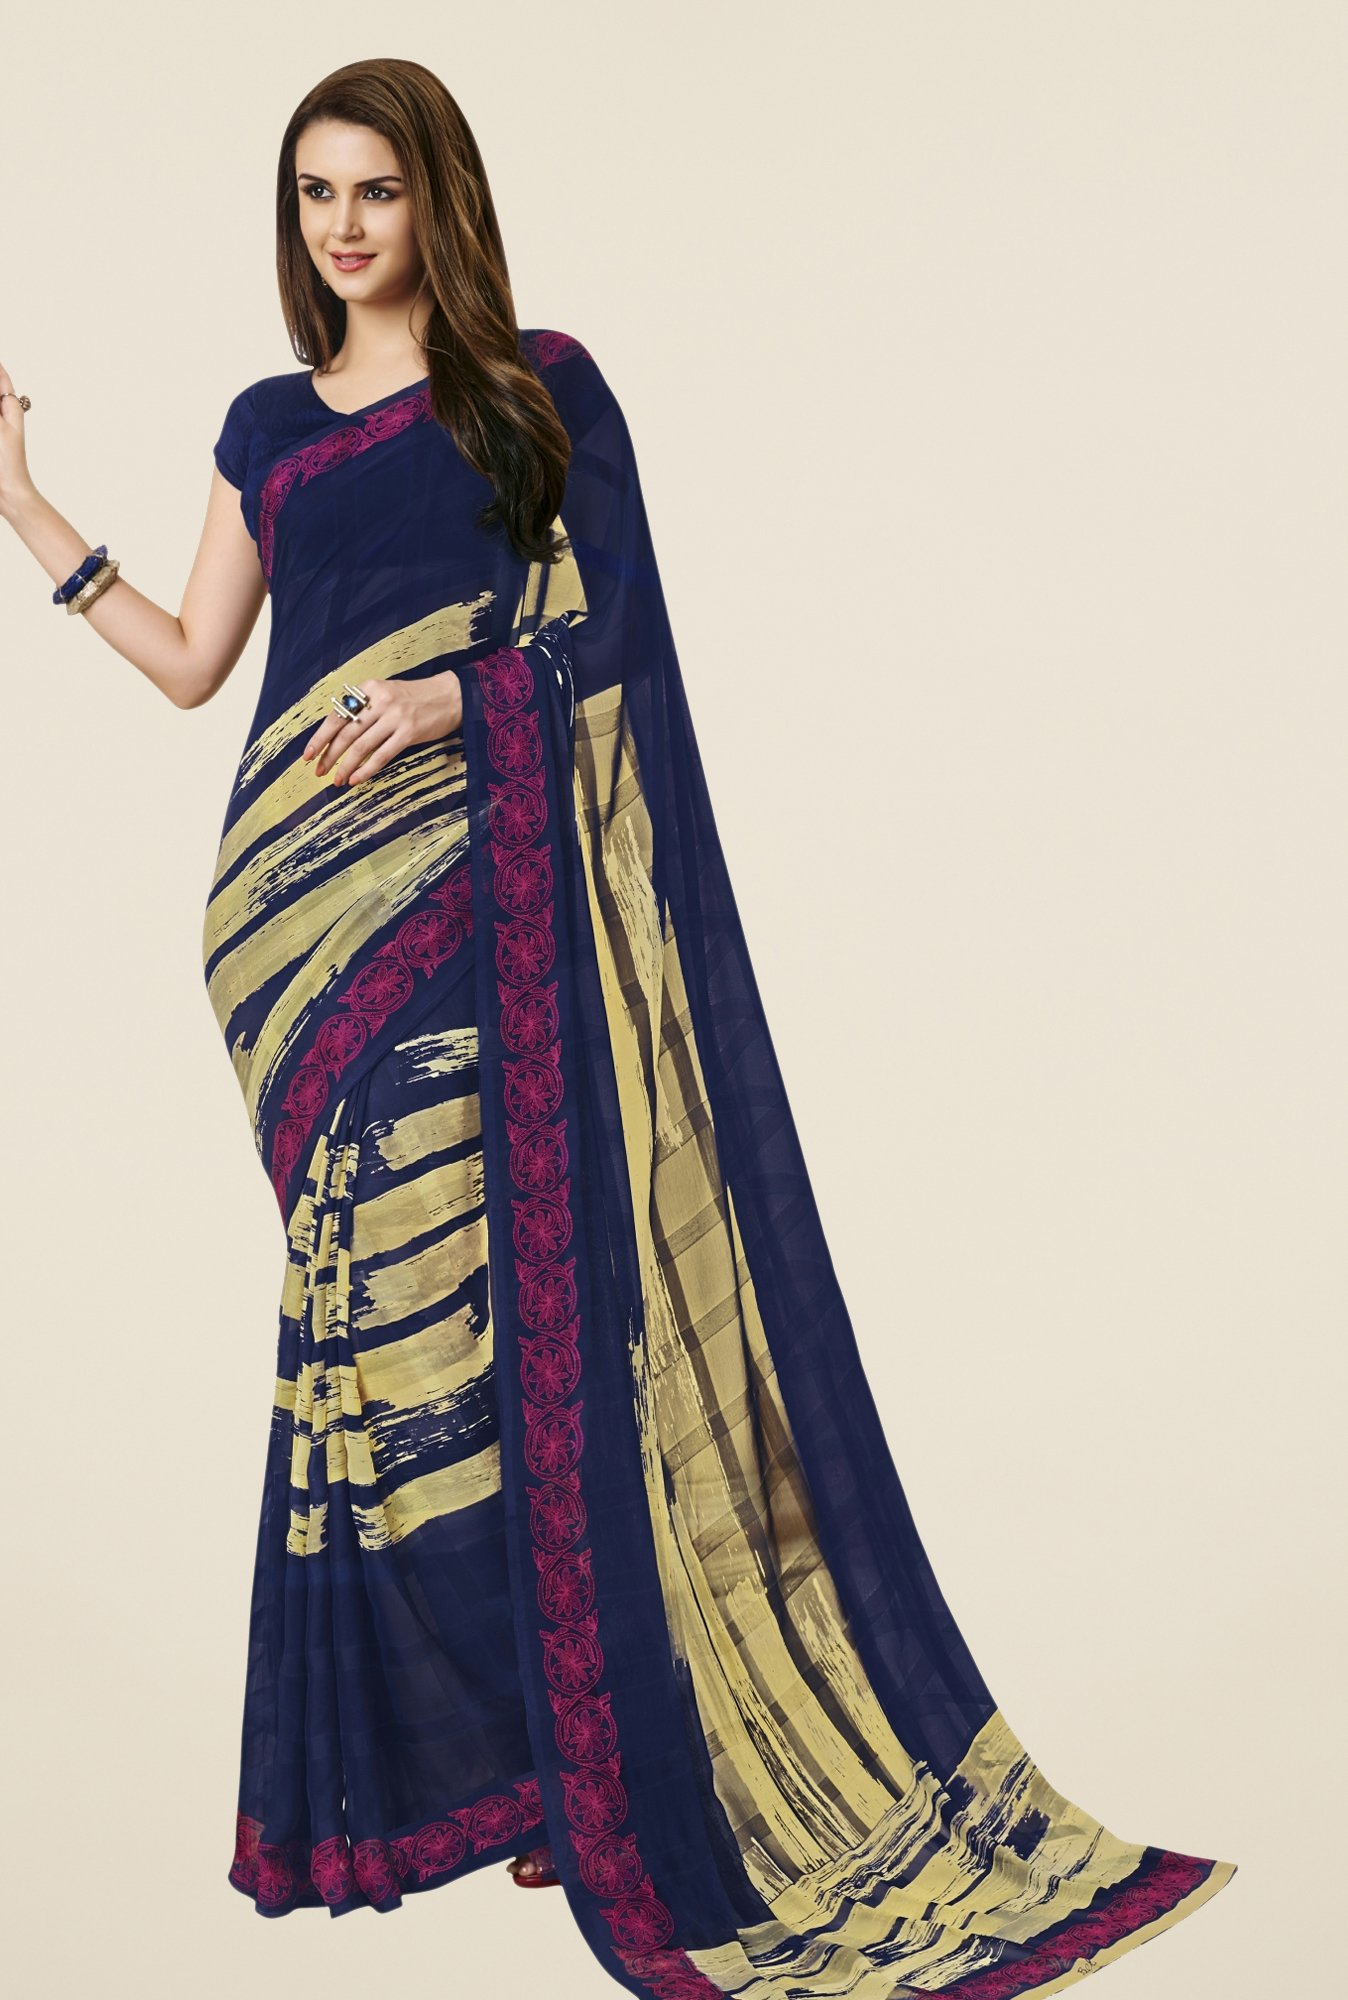 Triveni Navy Printed Faux Georgette Saree